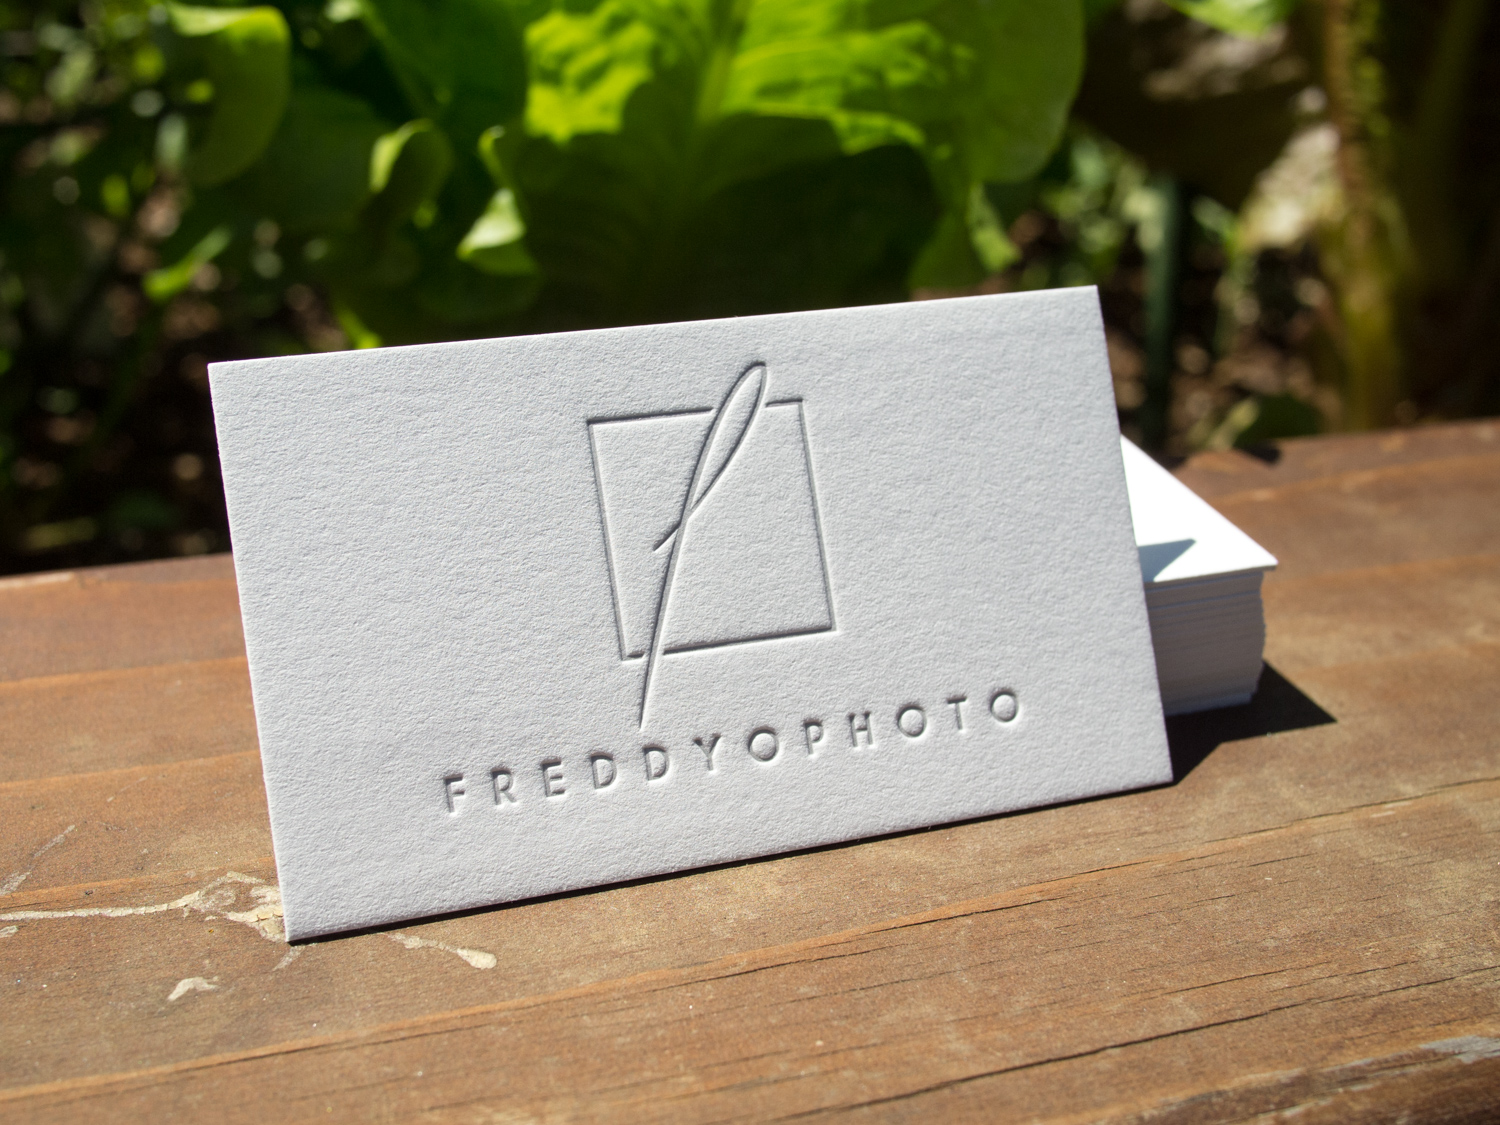 Business Cards for FREDDYOPHOTO — the Parklife Blog